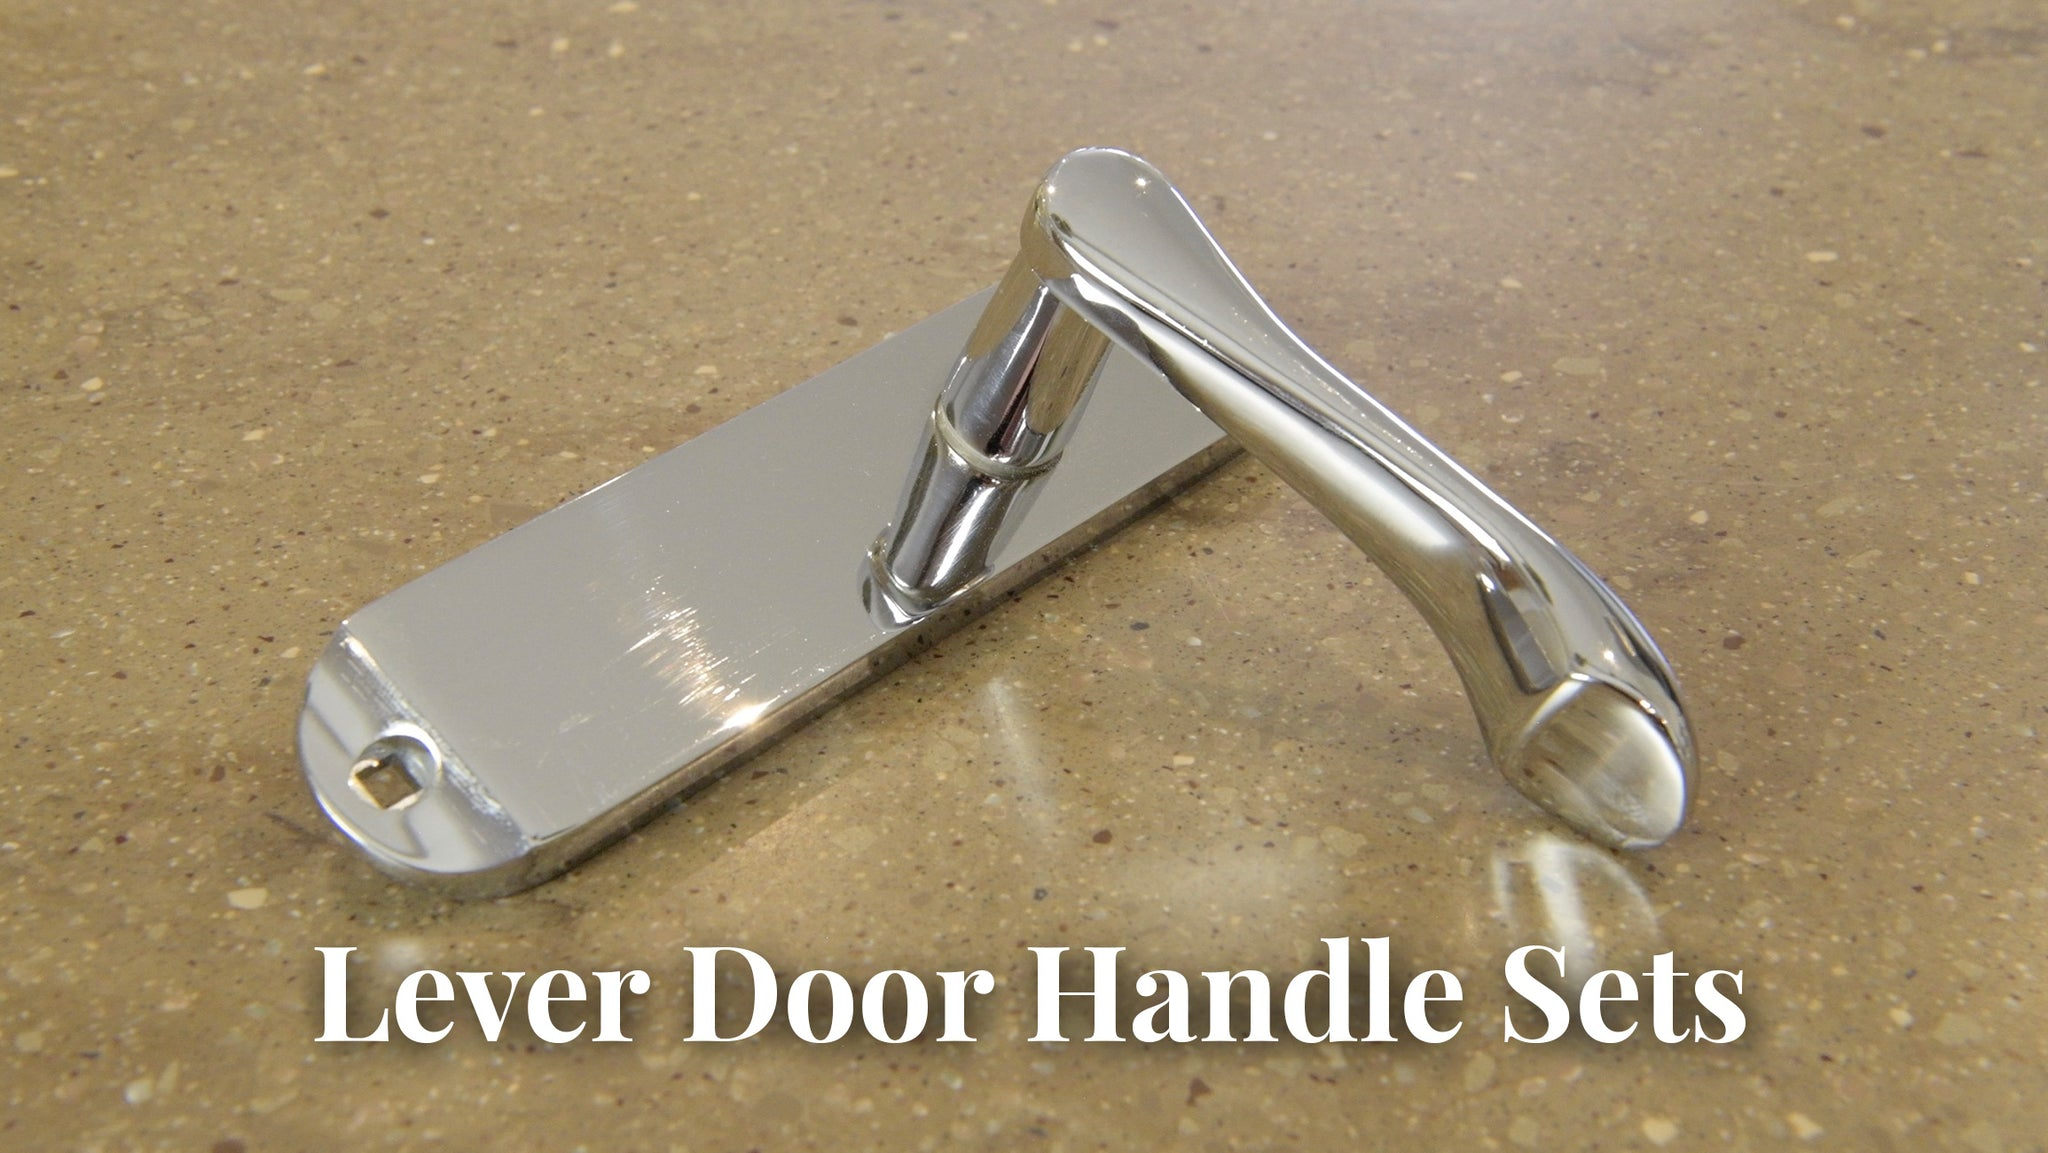 Lever Door Handle Sets Information